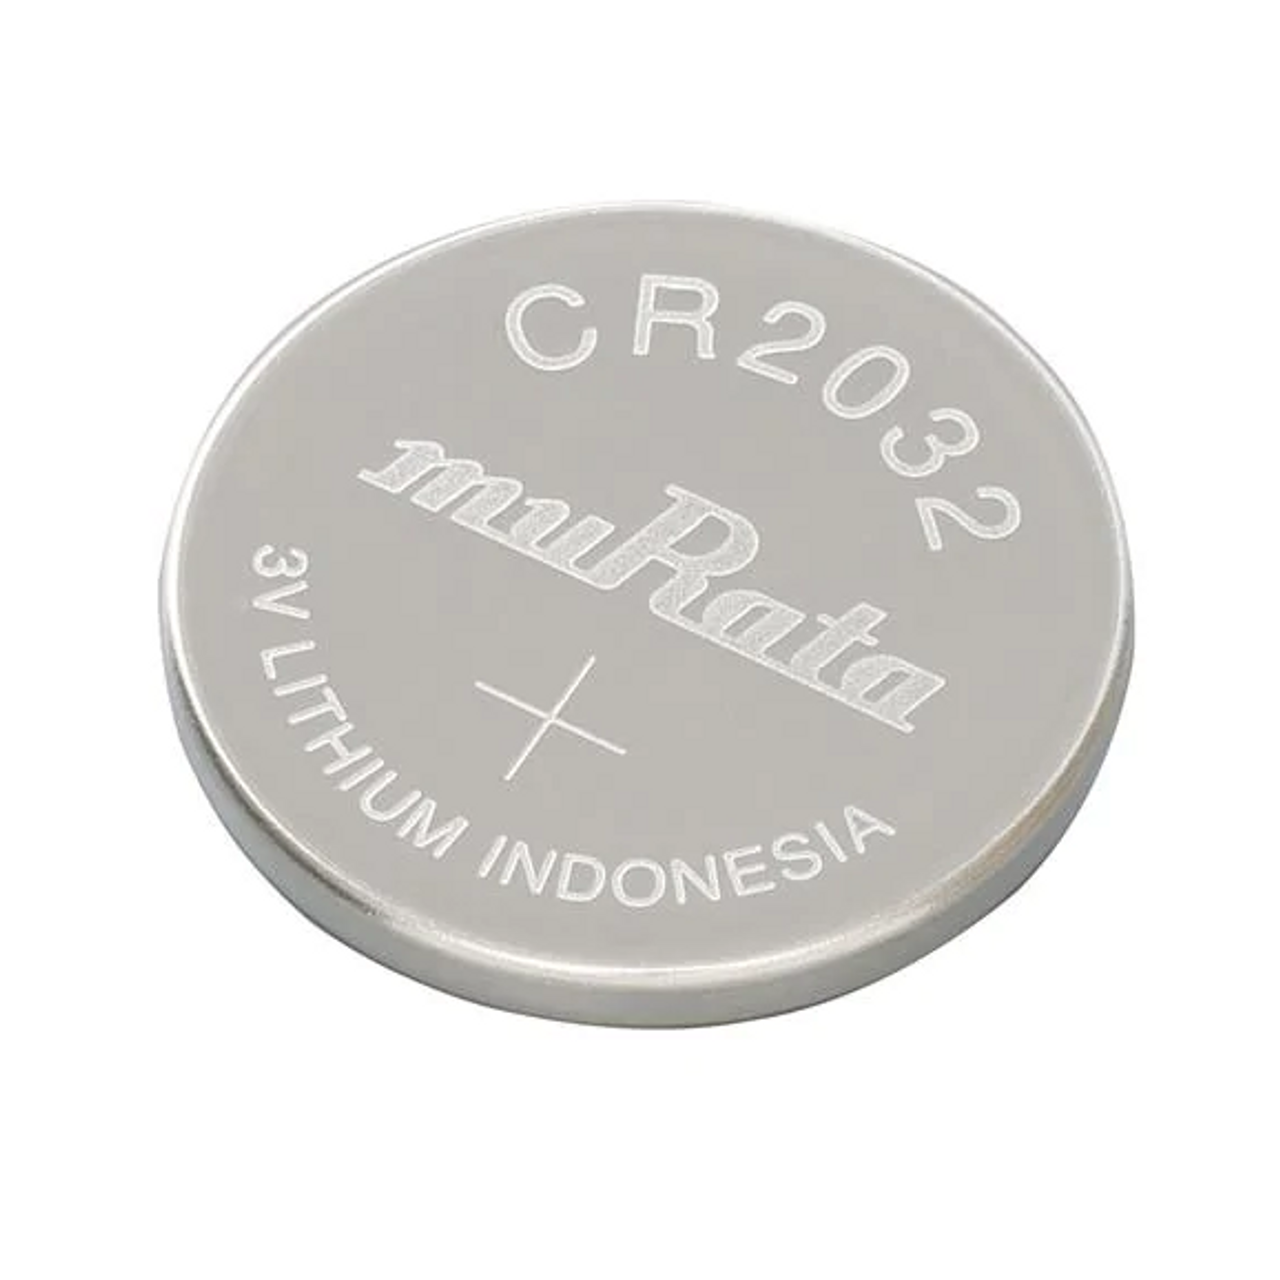 CR2032 Battery By muRata Sony - 3V Lithium Coin Cell